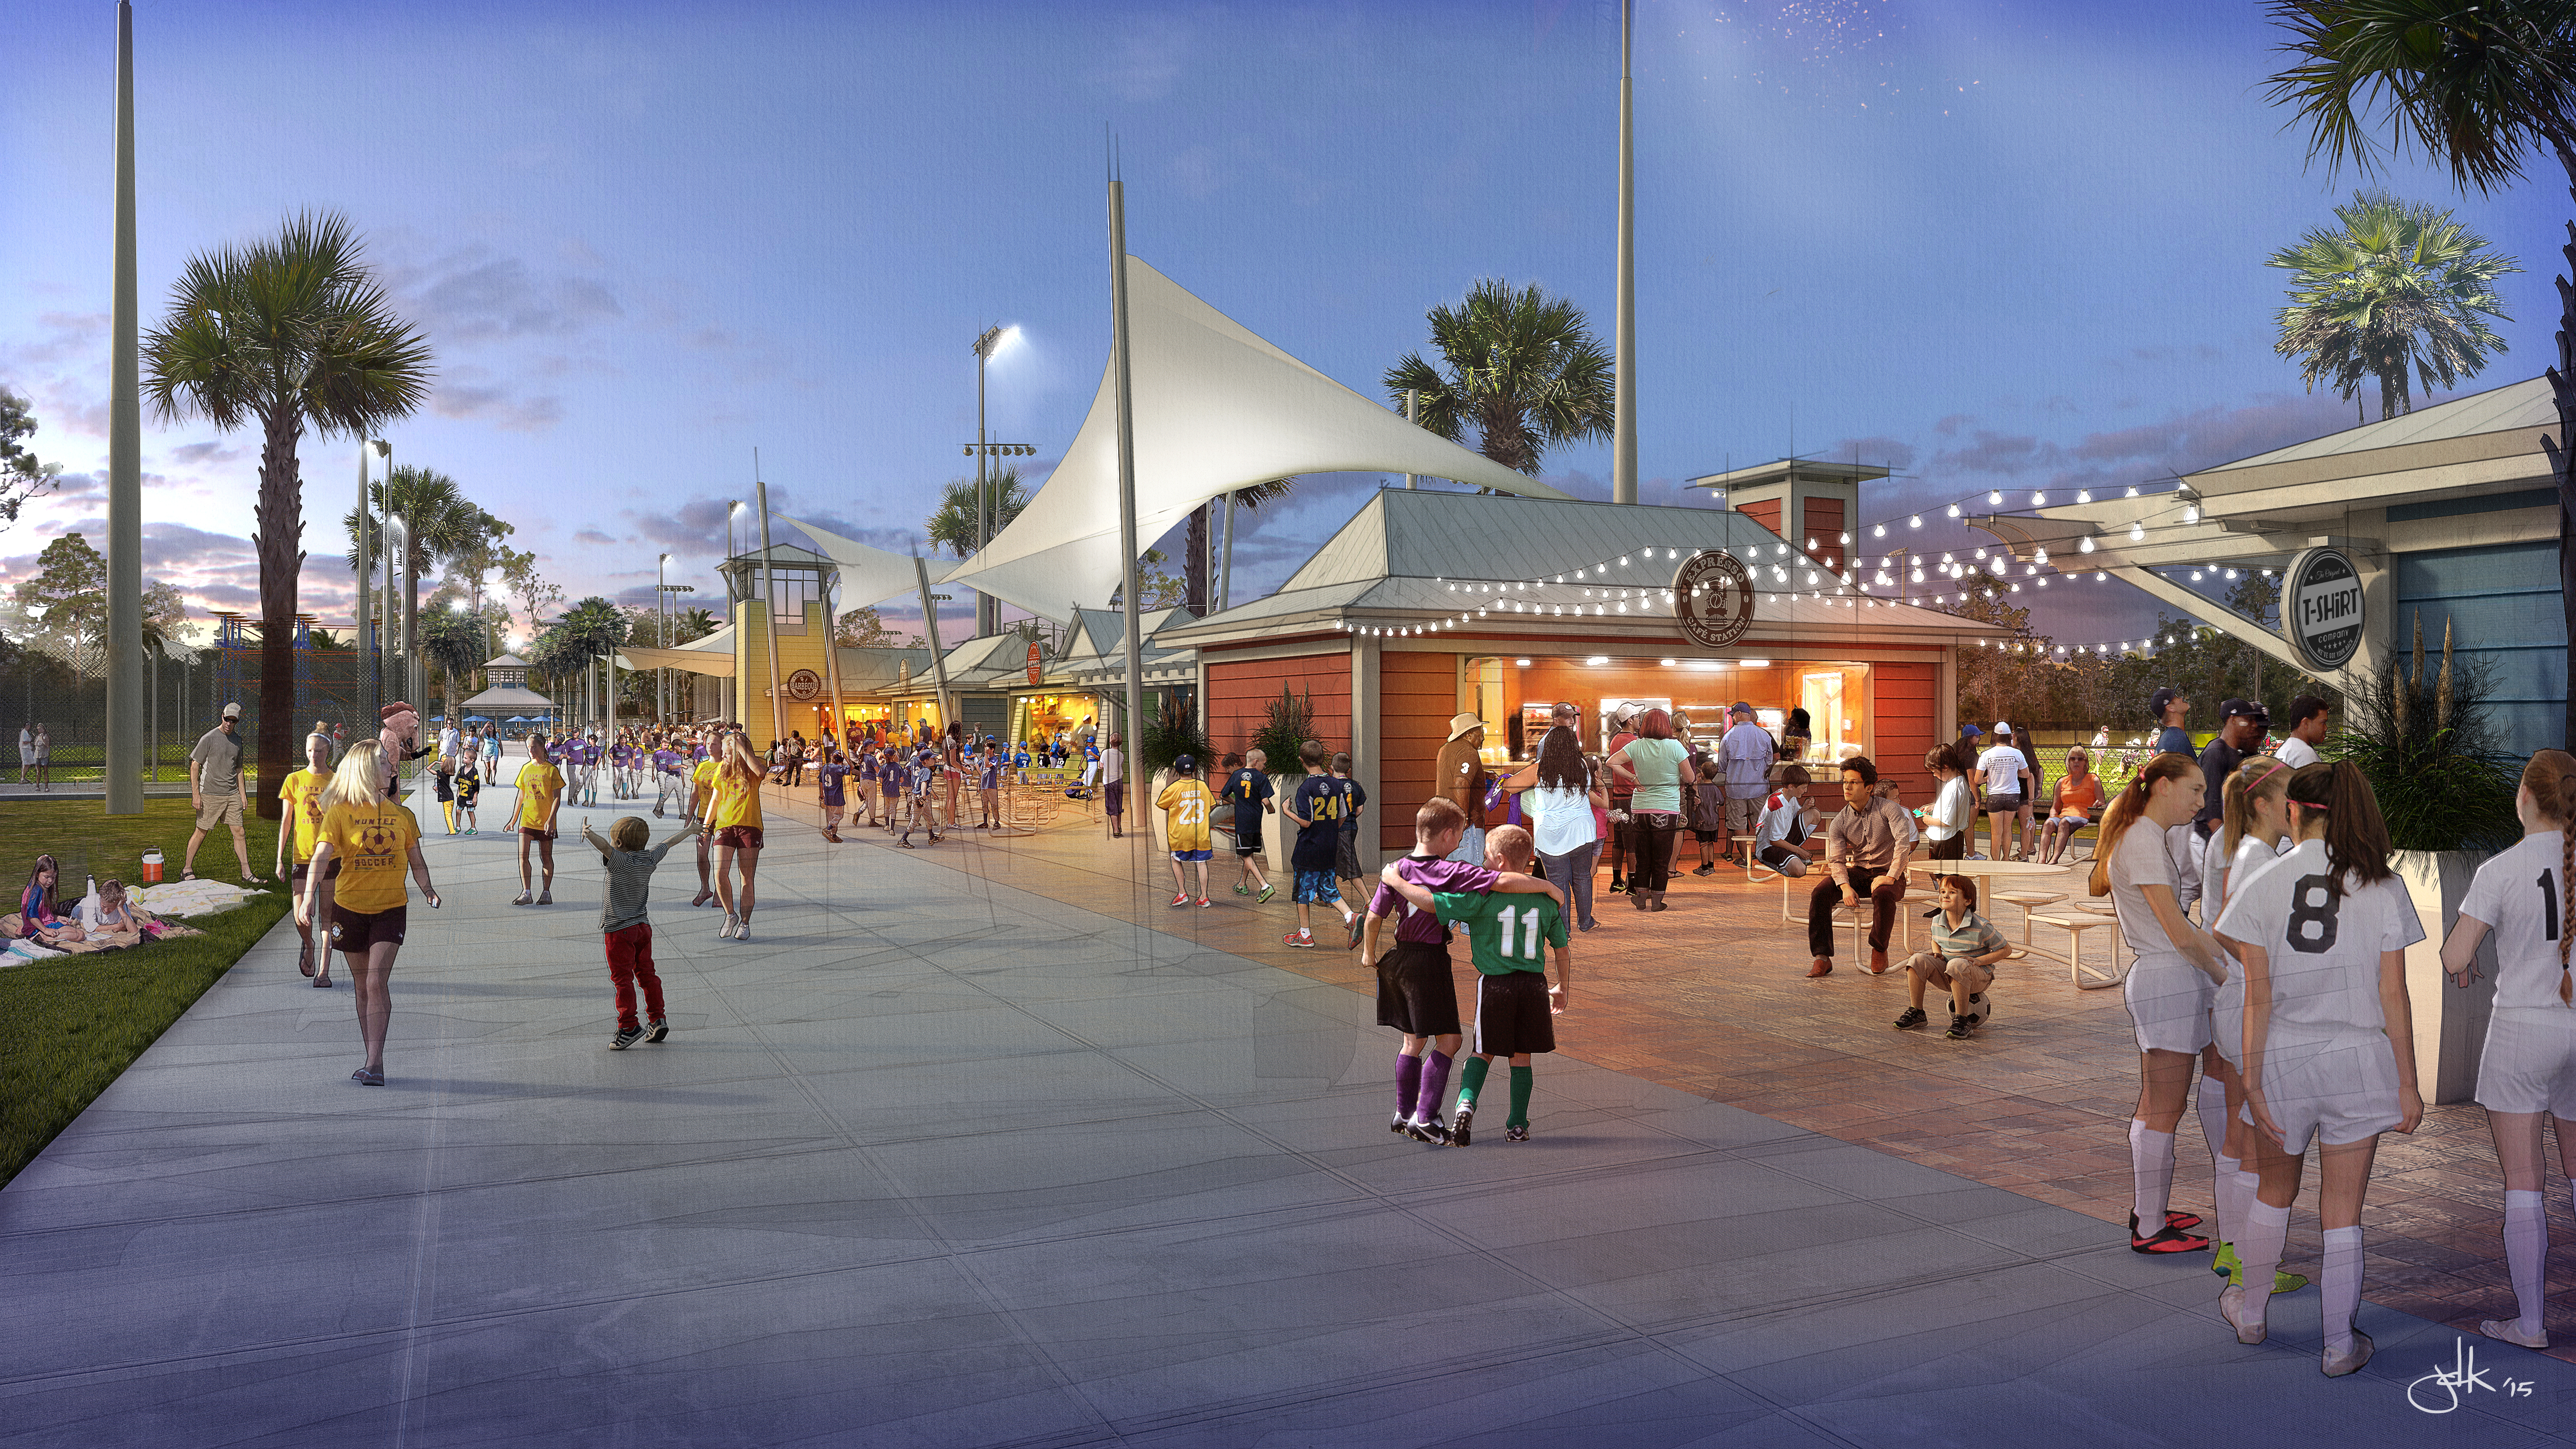 YEAR IN REVIEW NO. 5: PCB sports park on schedule